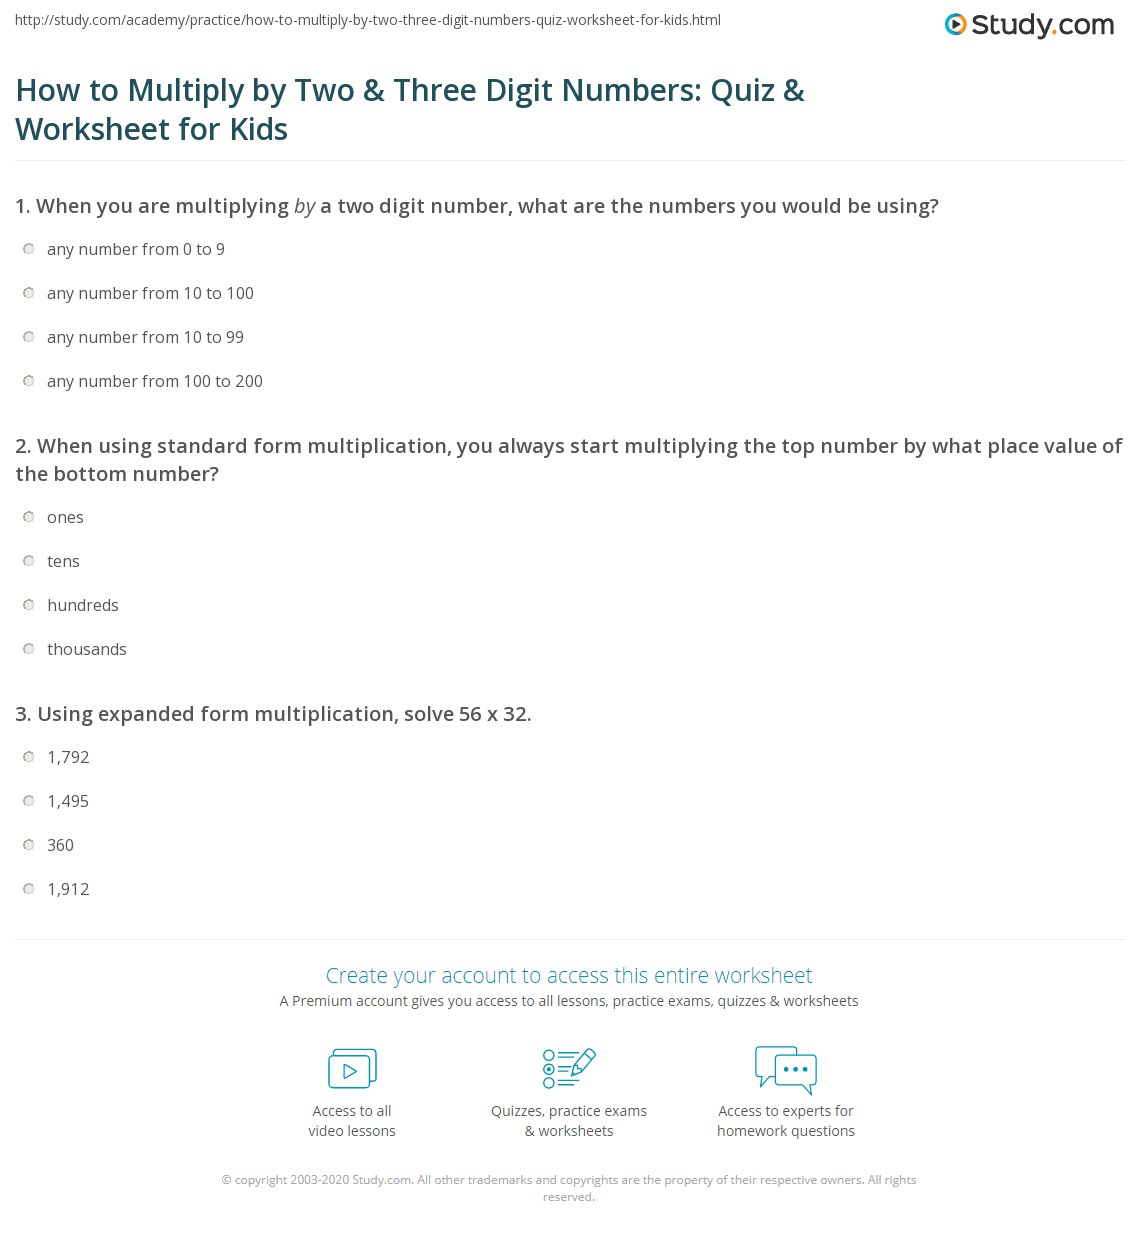 How To Multiply By Two Three Digit Numbers Quiz Worksheet For